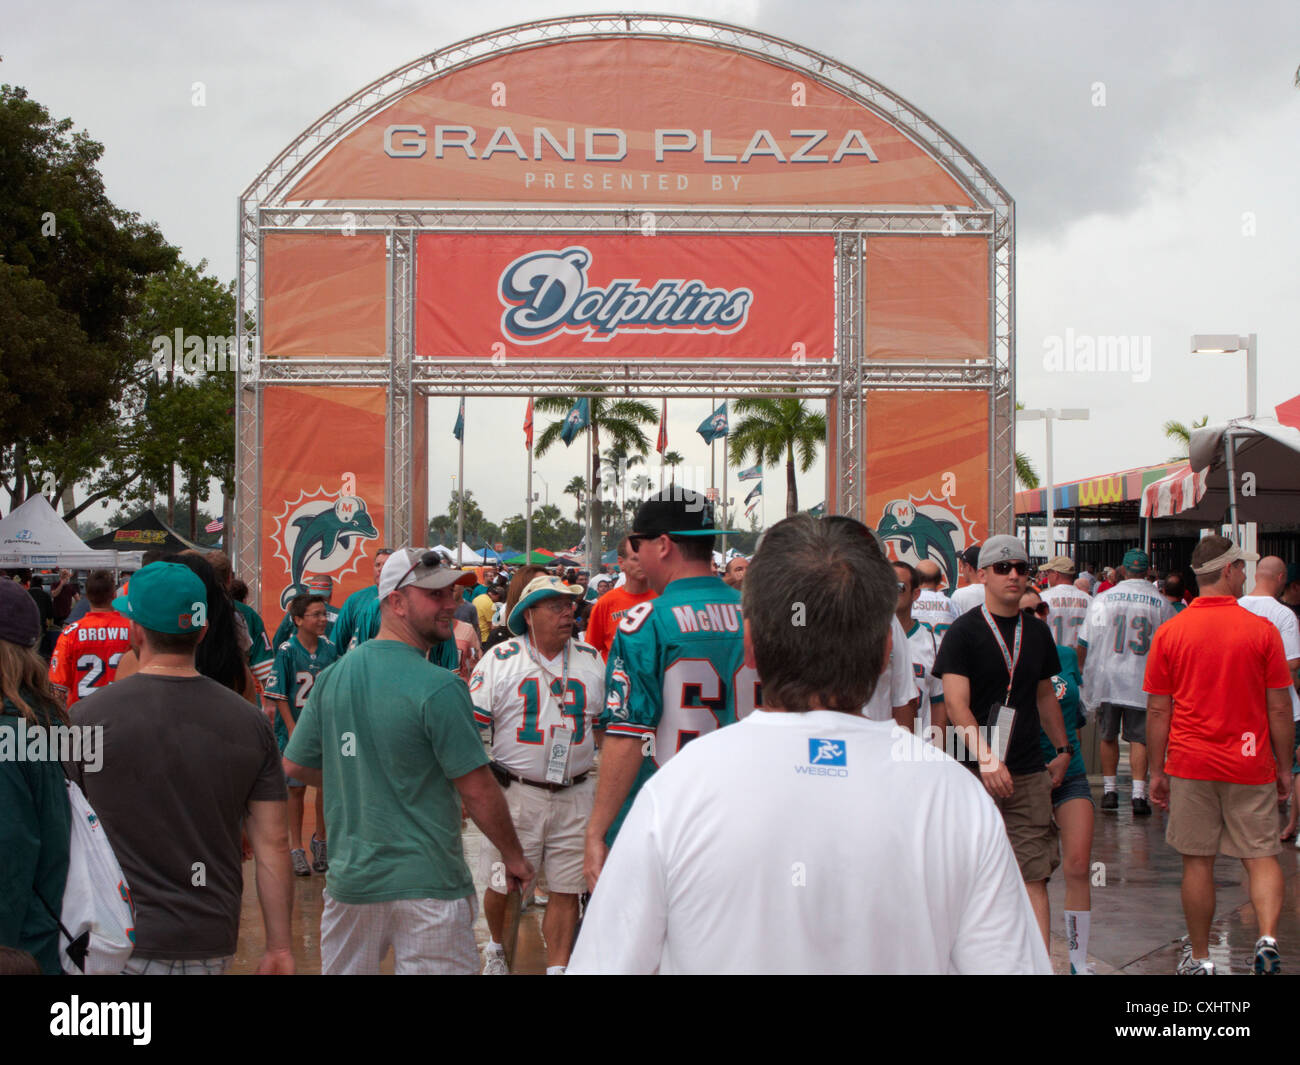 a342a0c3 Miami Dolphins Nfl Stock Photos & Miami Dolphins Nfl Stock Images ...